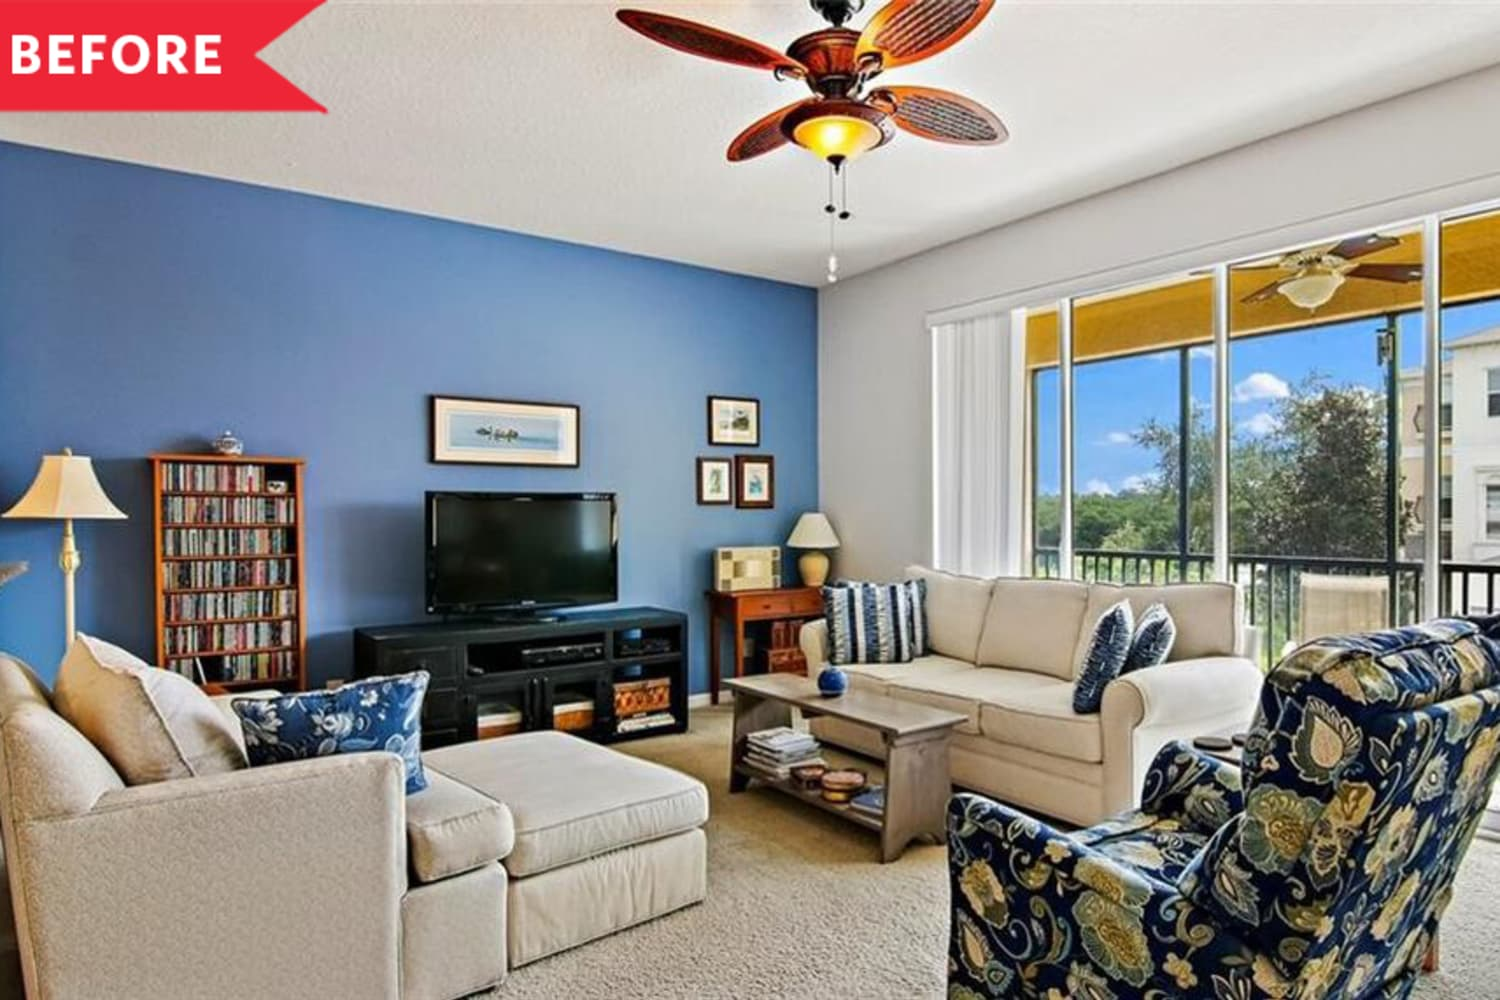 Before and After: A $150 Project Gives a Plain Living Room a Luxe Transformation